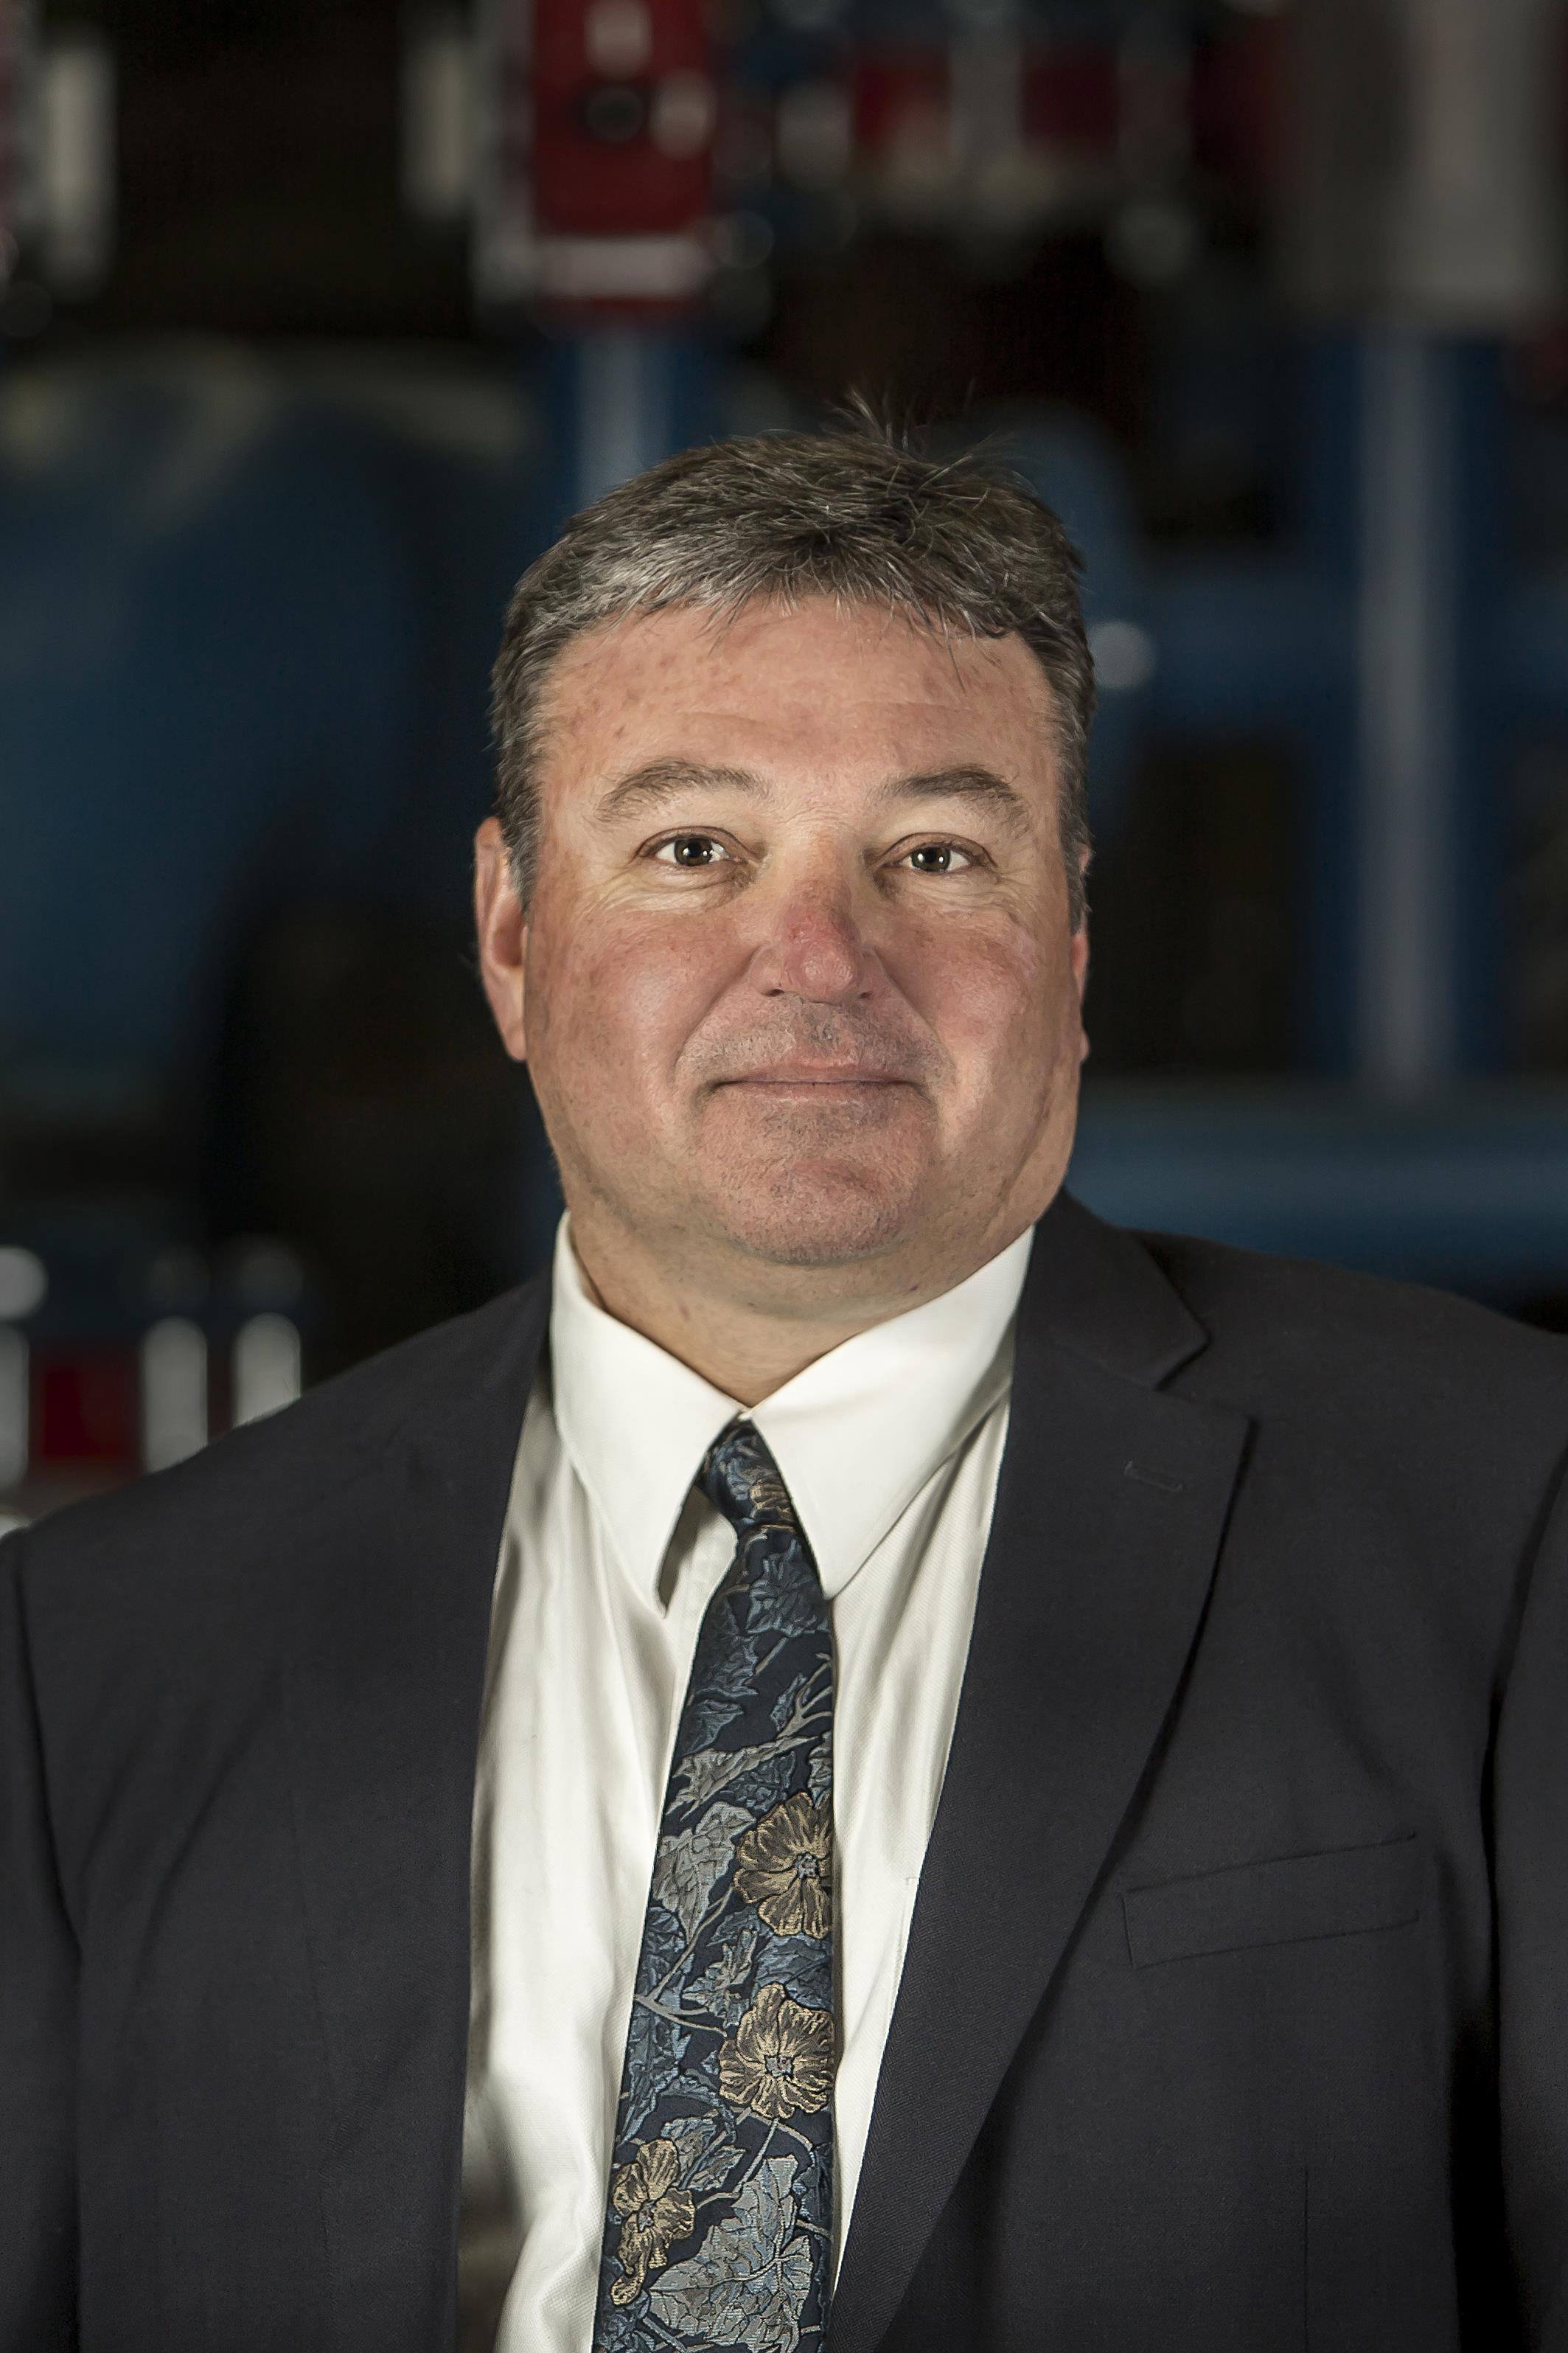 Eric-Petereit New Managing Director on Board at Retech Systems LLC